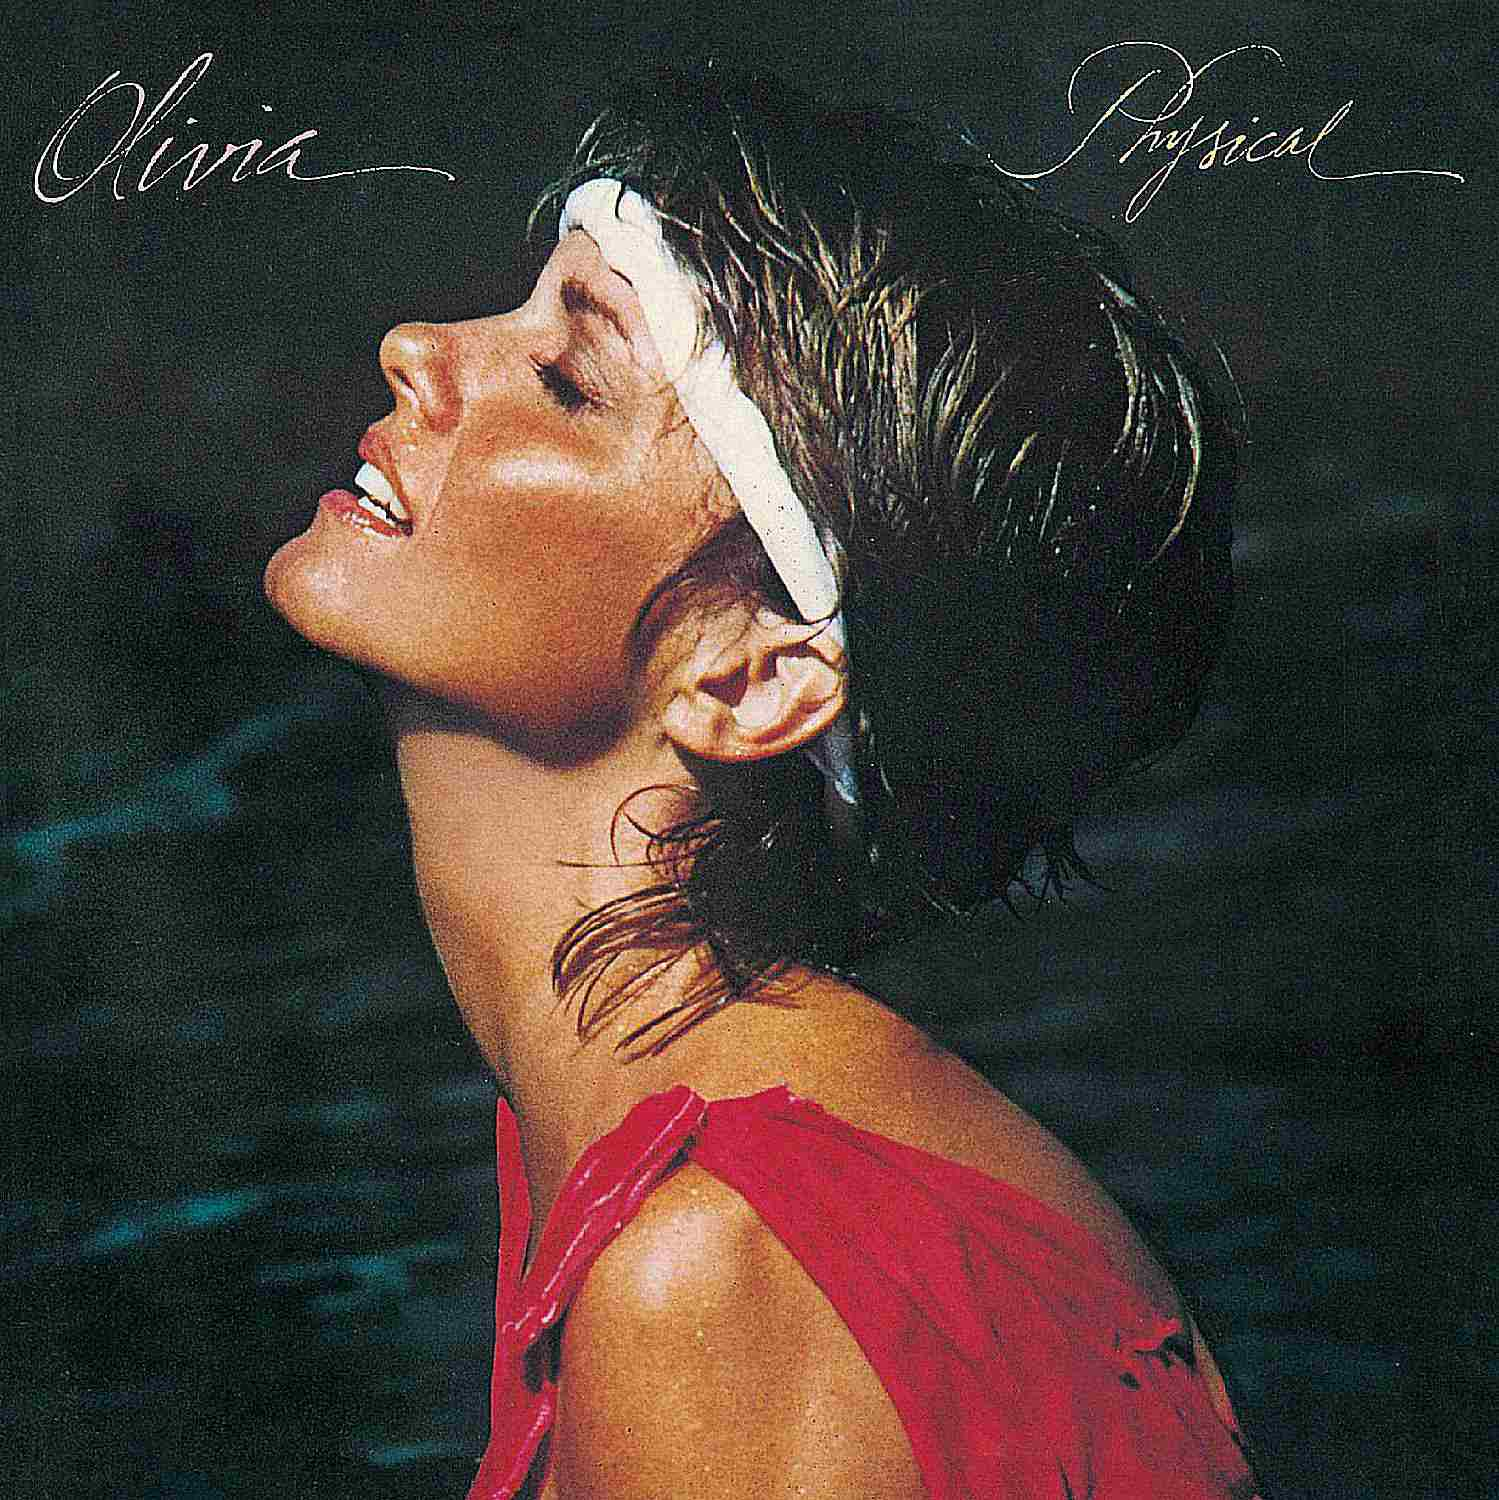 Olivia Newton-John entered the '80s with a fresh, sexy image - which helped her land one of 1981's most popular albums and singles.